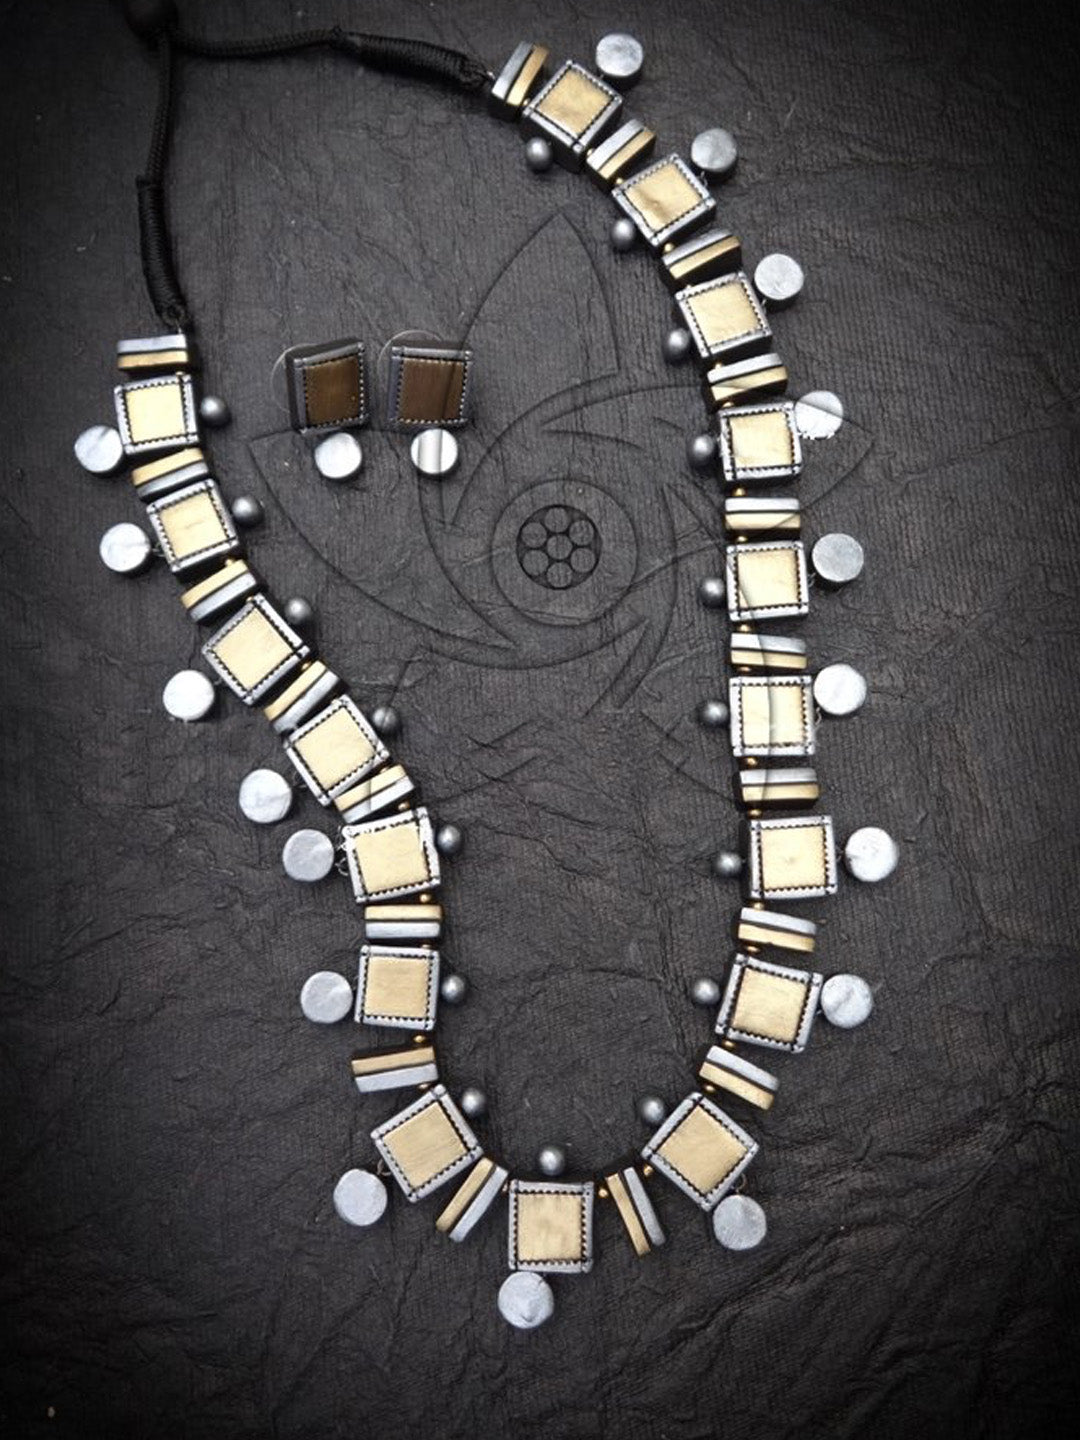 Designer Handmade Square Design Antique Gold Color With Silver Color Coins Medium Necklace Set By Nakshatra Terracotta